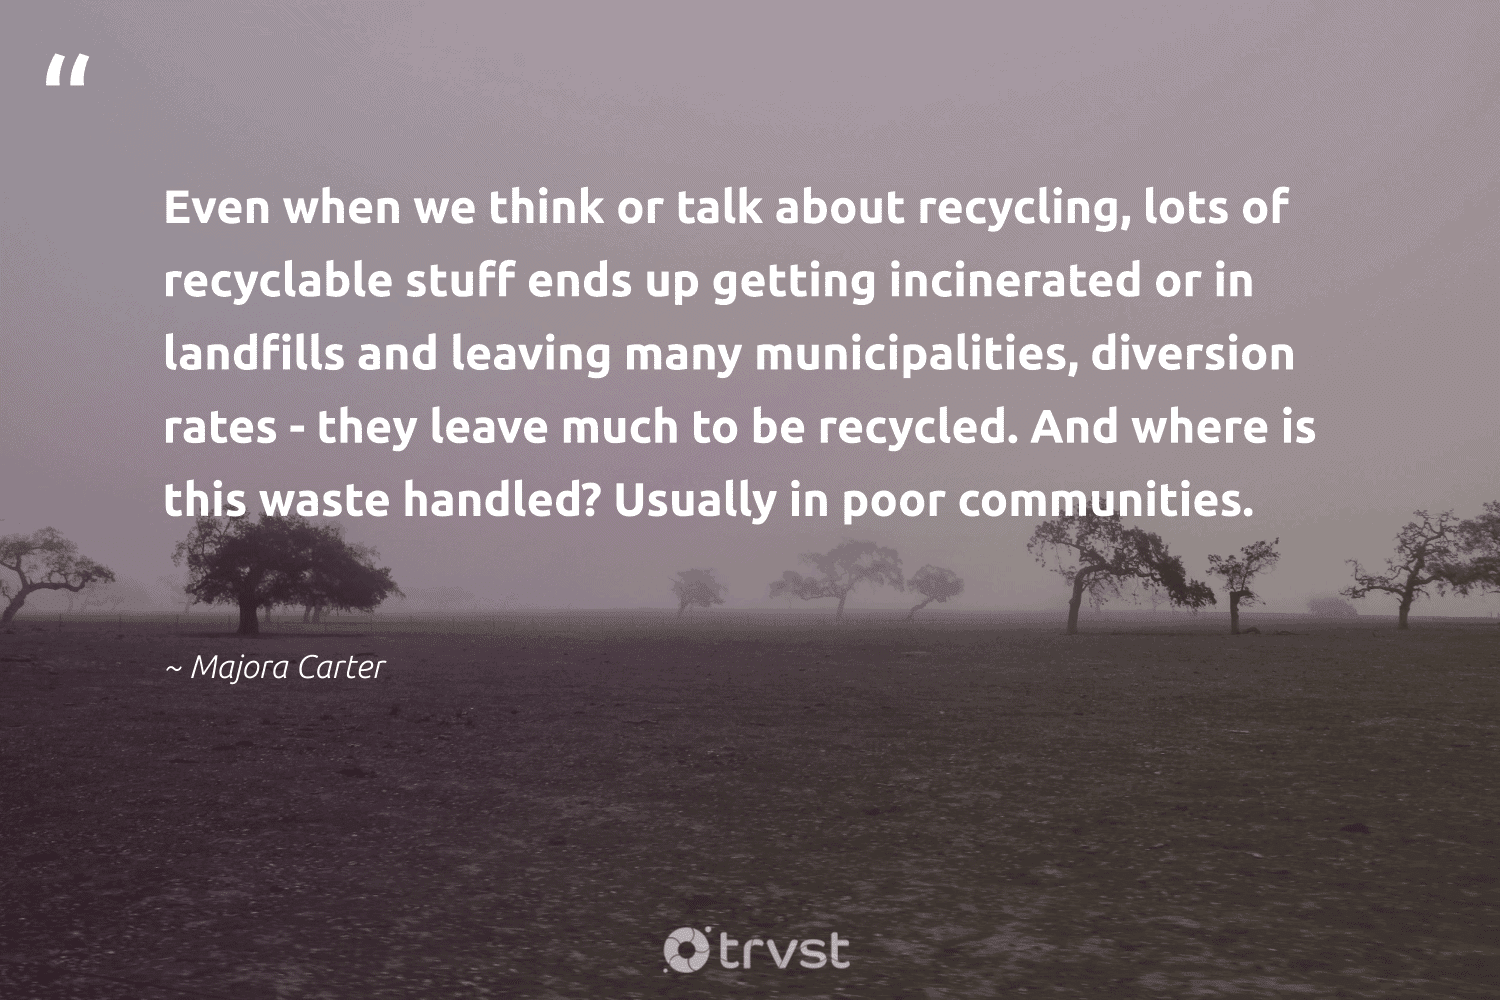 """""""Even when we think or talk about recycling, lots of recyclable stuff ends up getting incinerated or in landfills and leaving many municipalities, diversion rates - they leave much to be recycled. And where is this waste handled? Usually in poor communities.""""  - Majora Carter #trvst #quotes #recycling #waste #landfills #recycled #poor #communities #reuse #refuse #environment #ecoactivism"""